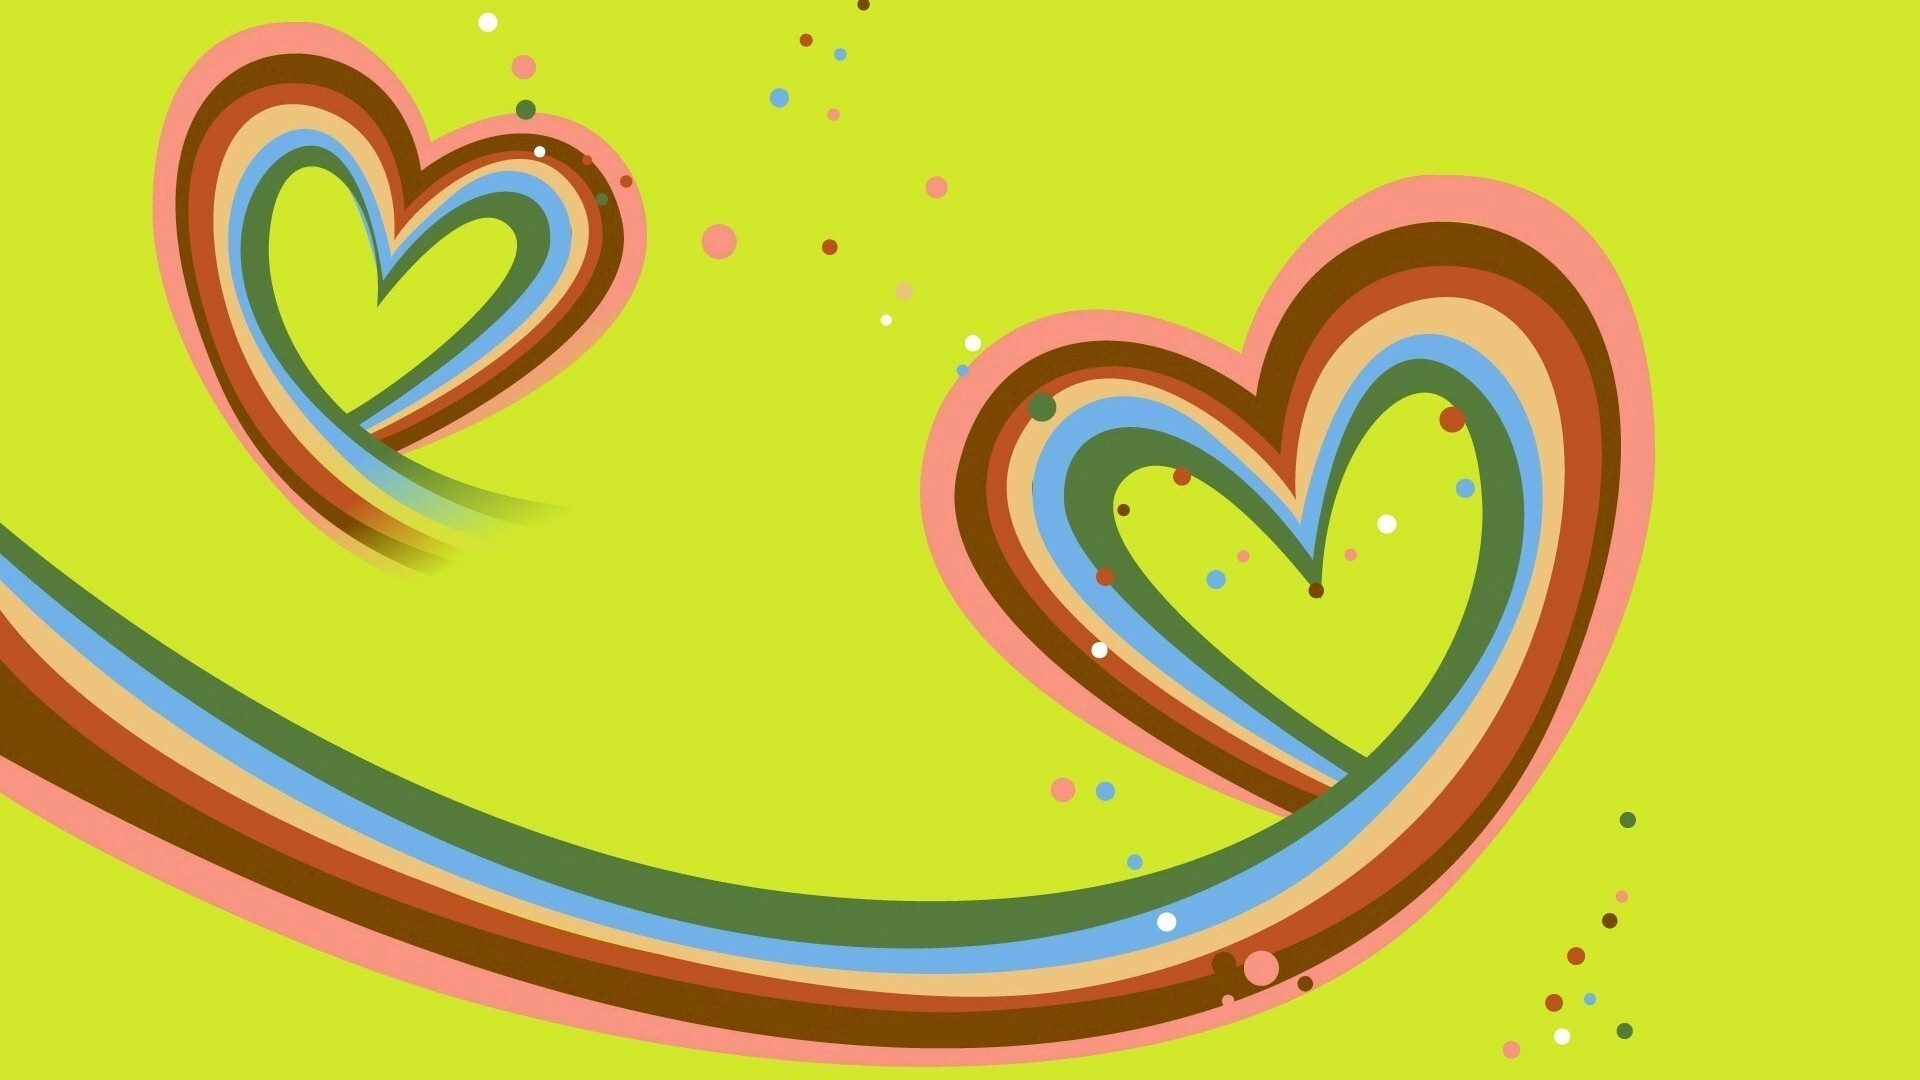 Colorful Heart Wallpaper DOWNLOAD